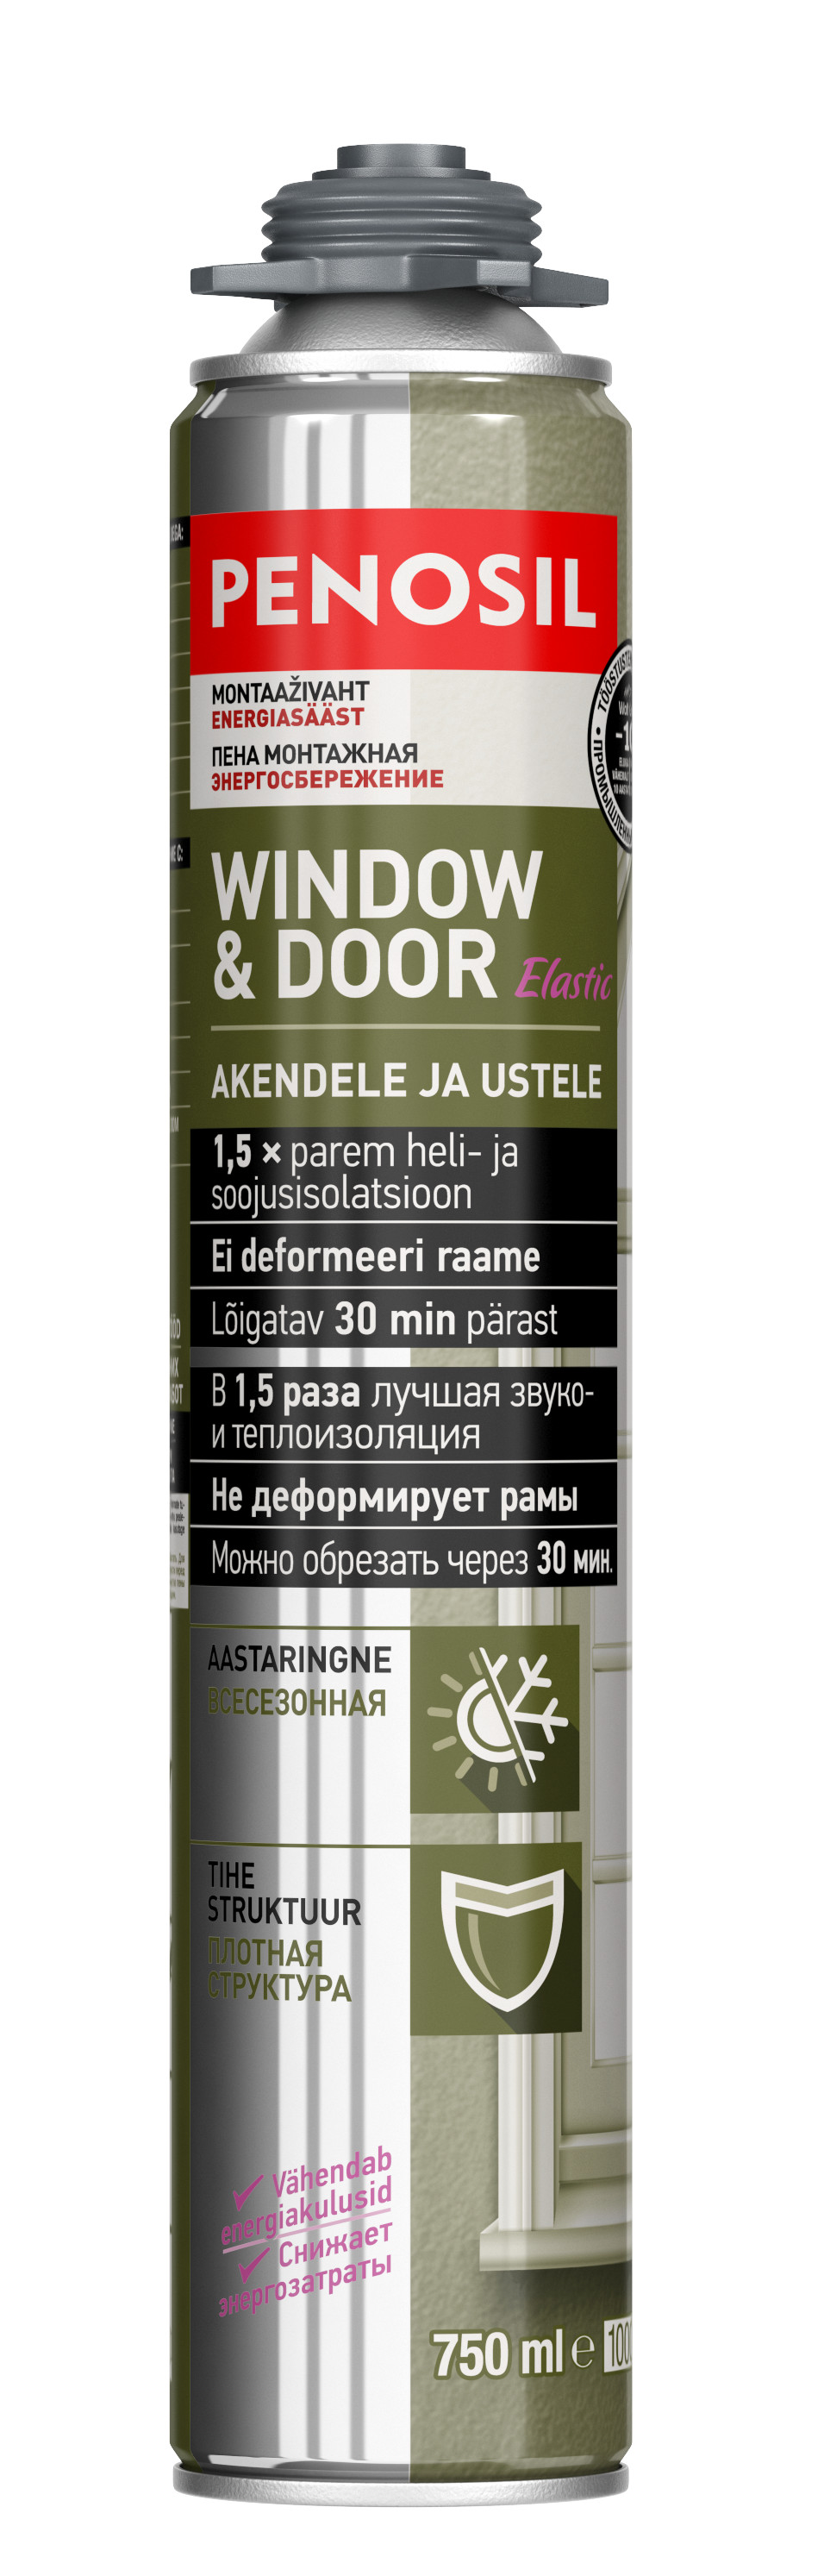 MKR_2778_PENOSIL_Window_Door_Elastic_Foam_Sealant_750ml_EE_RU_M65x300mm